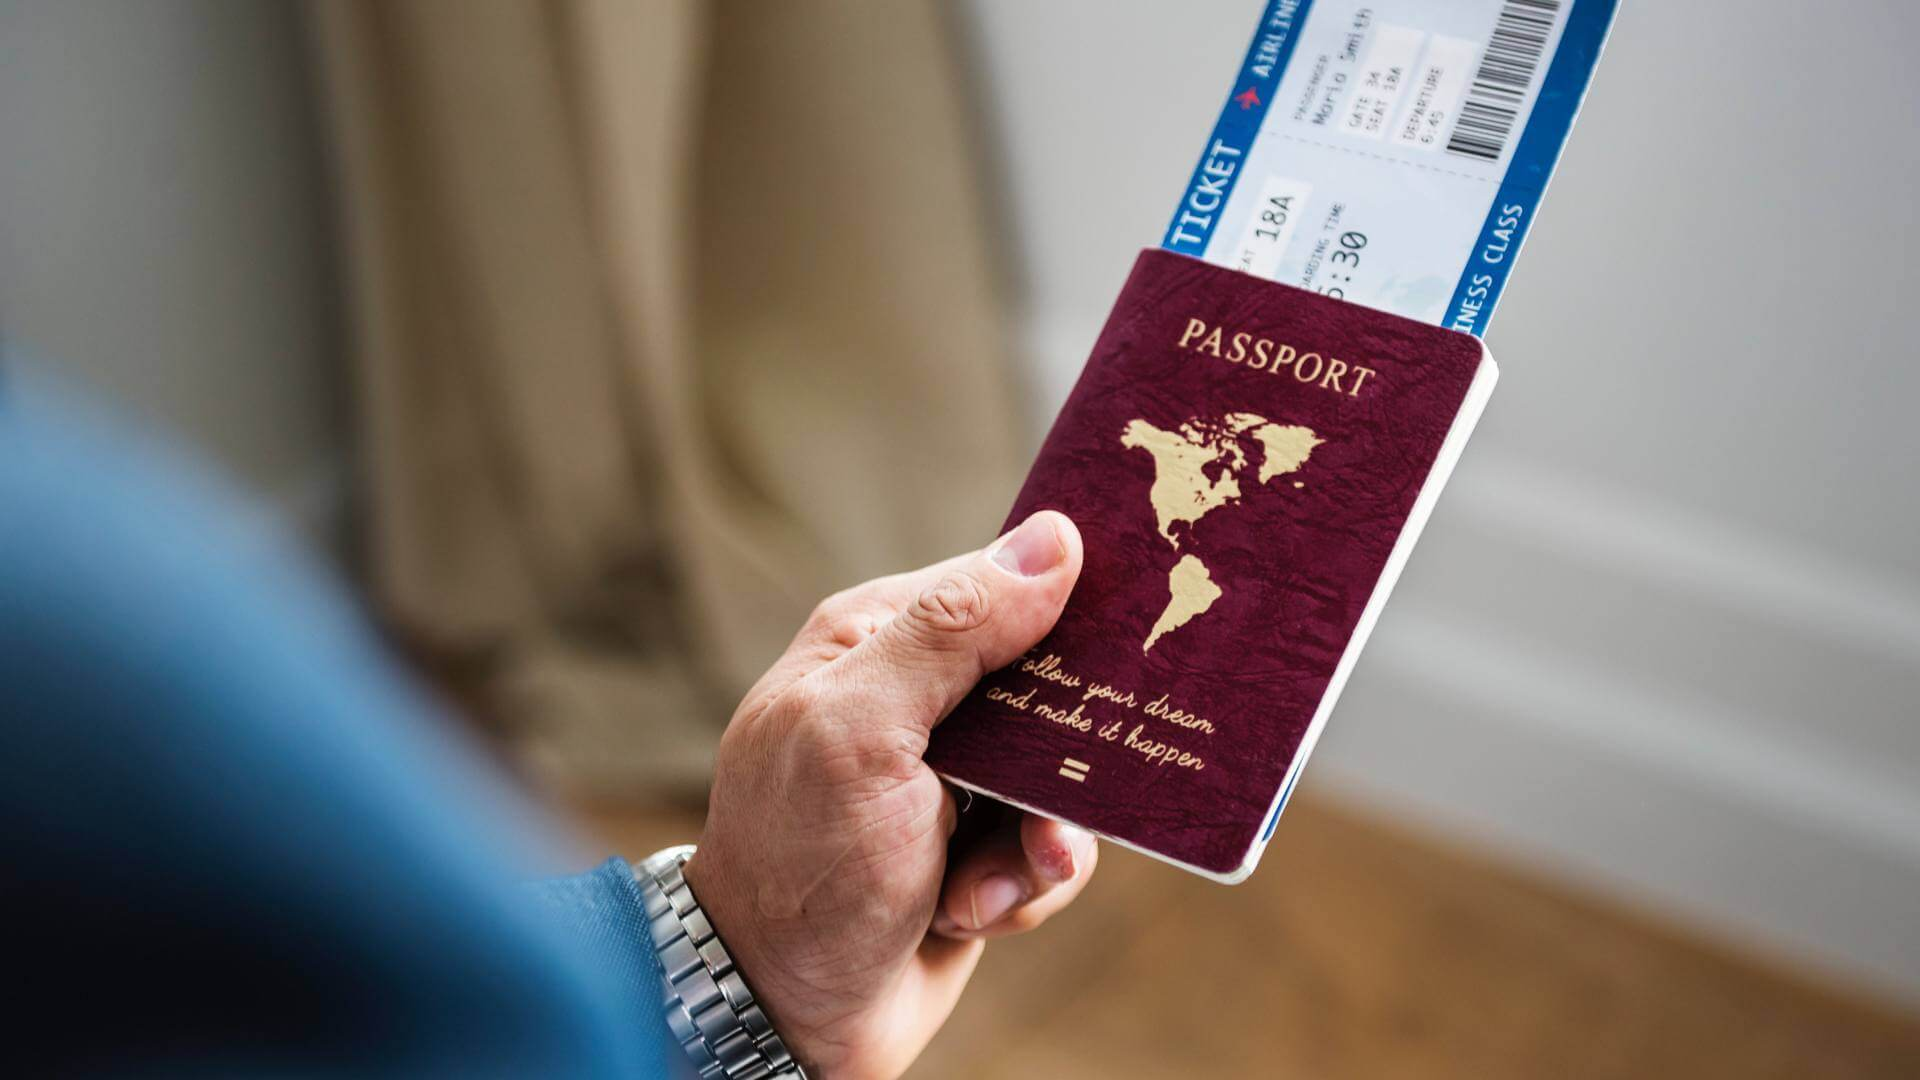 Someone holding a passport with a flight ticket inside